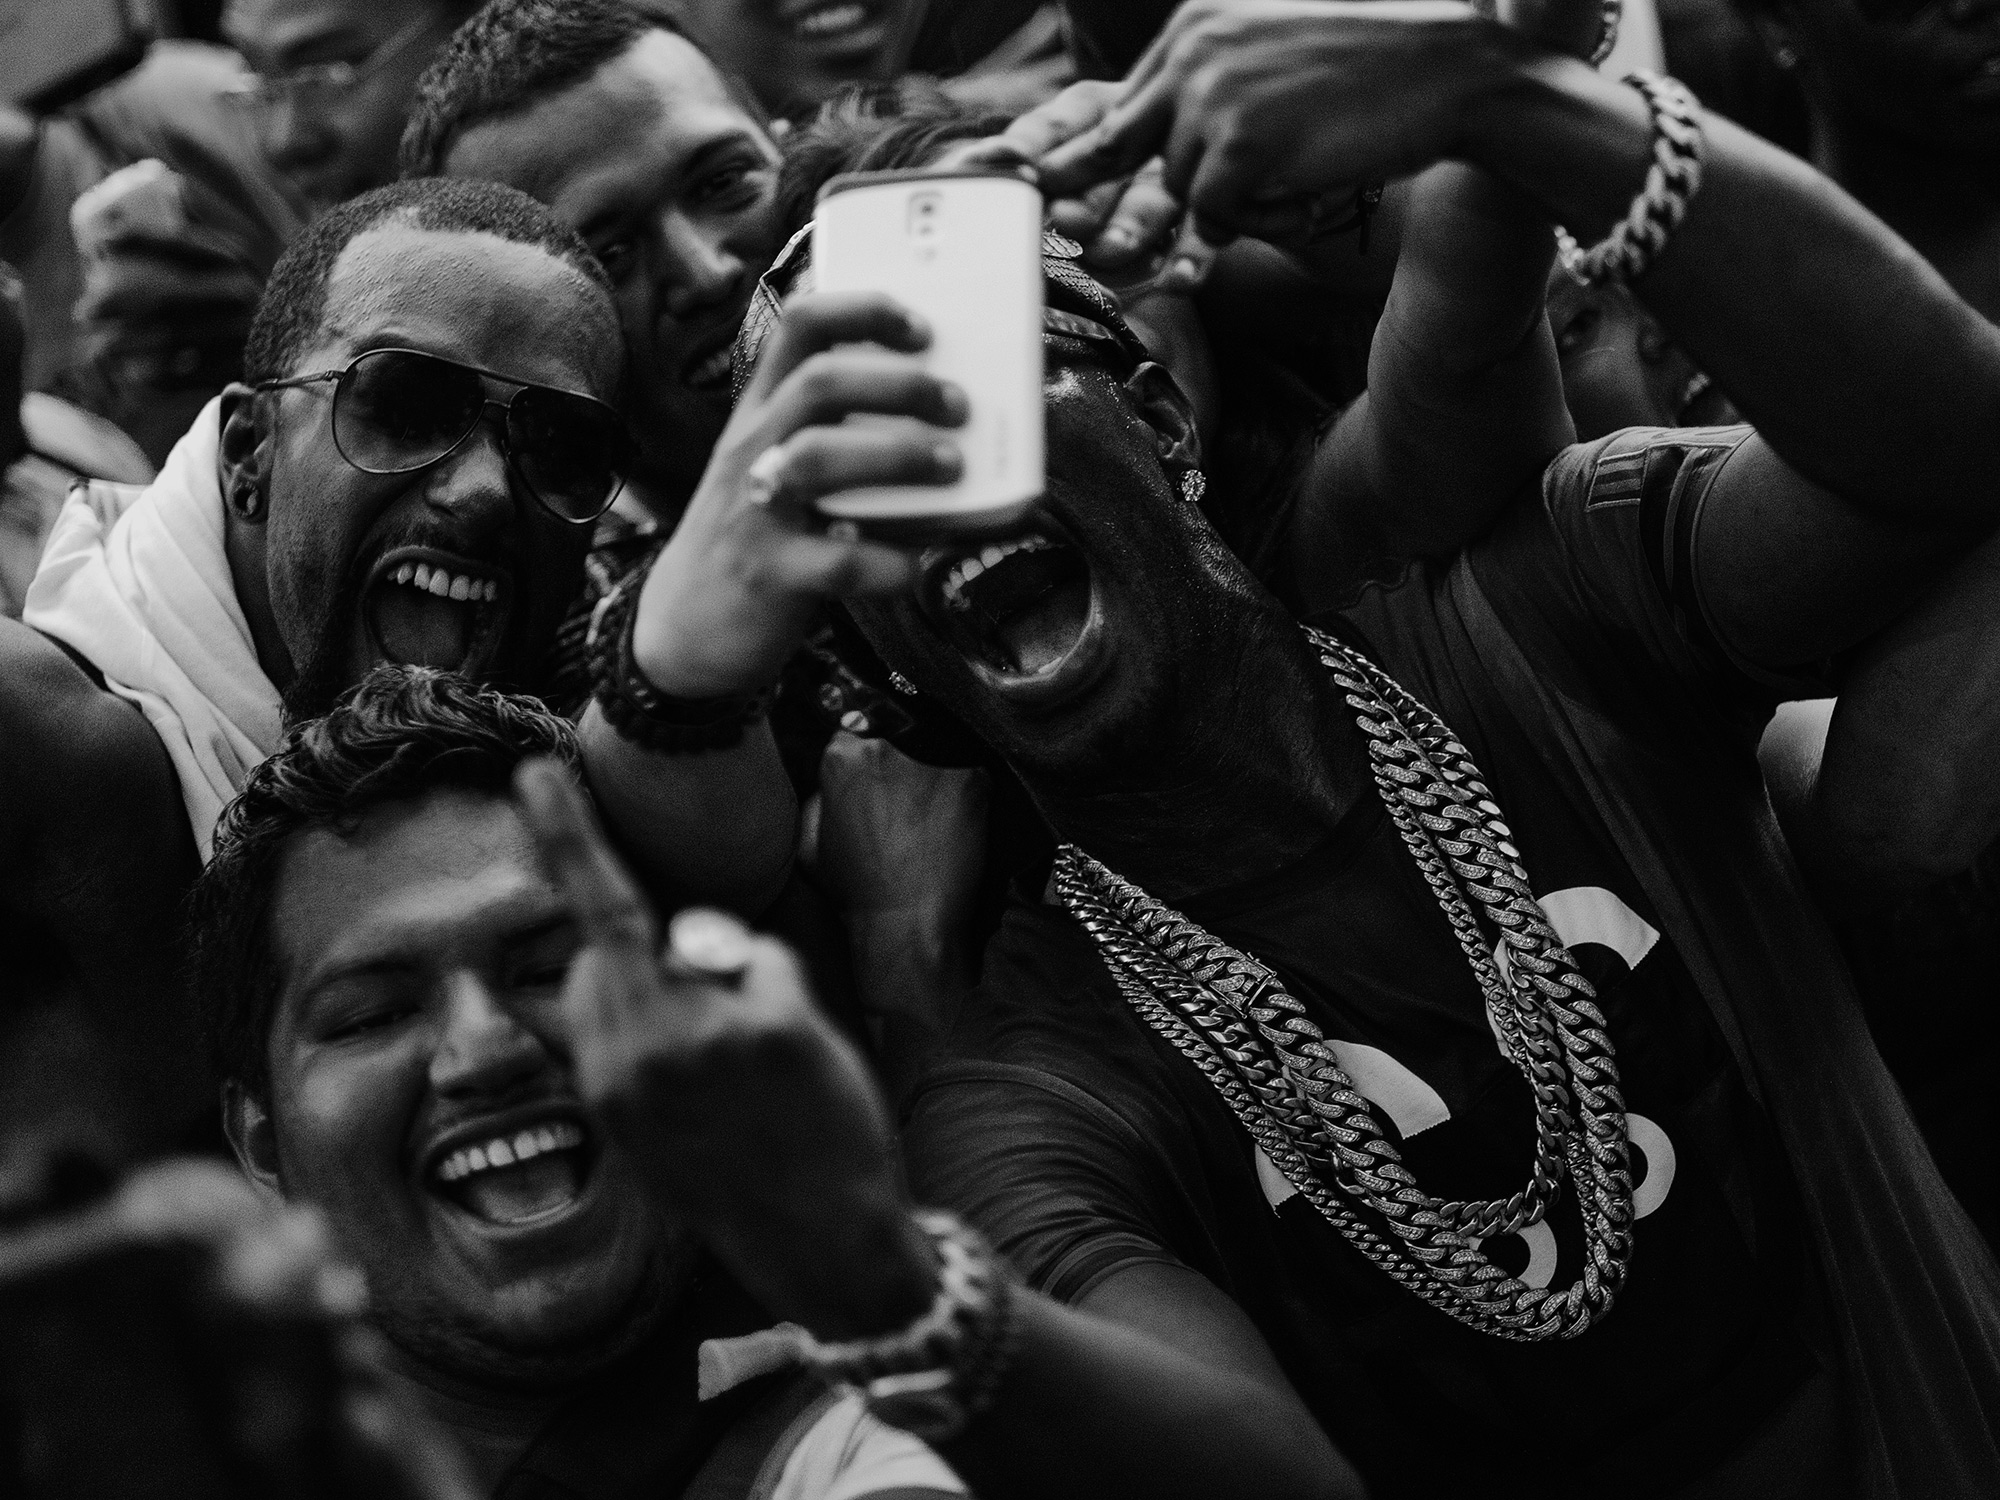 Juicy J, hip hop artist, producer rapper and part of the outfit, Three Six Mafia, parties with an enthusiastic crowd in Houston, Texas, photographed by Todd Spoth.